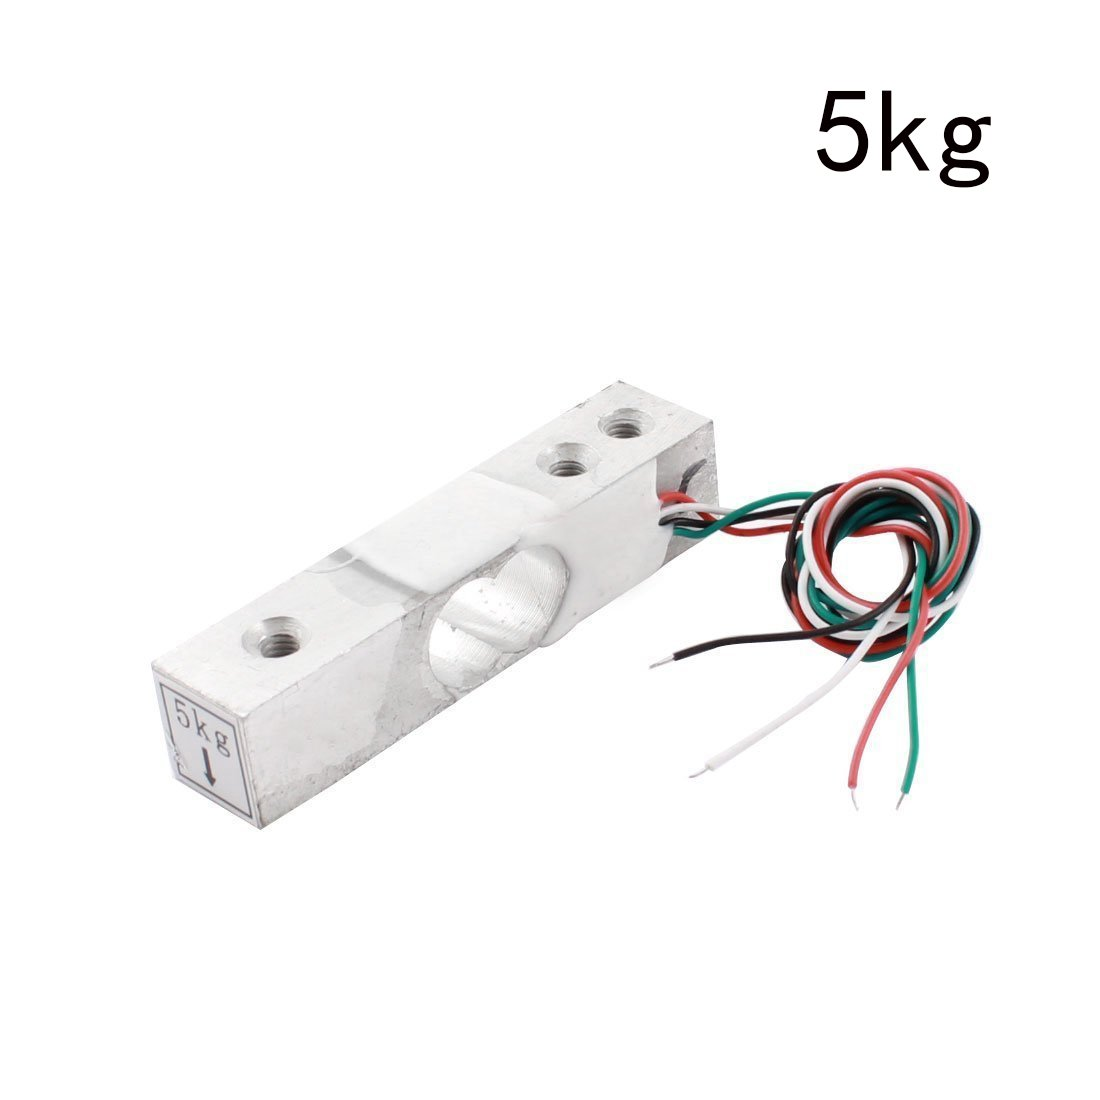 Yohii 10Kg Electronic Balance Load Cell Weight Sensor for Arduino Scale